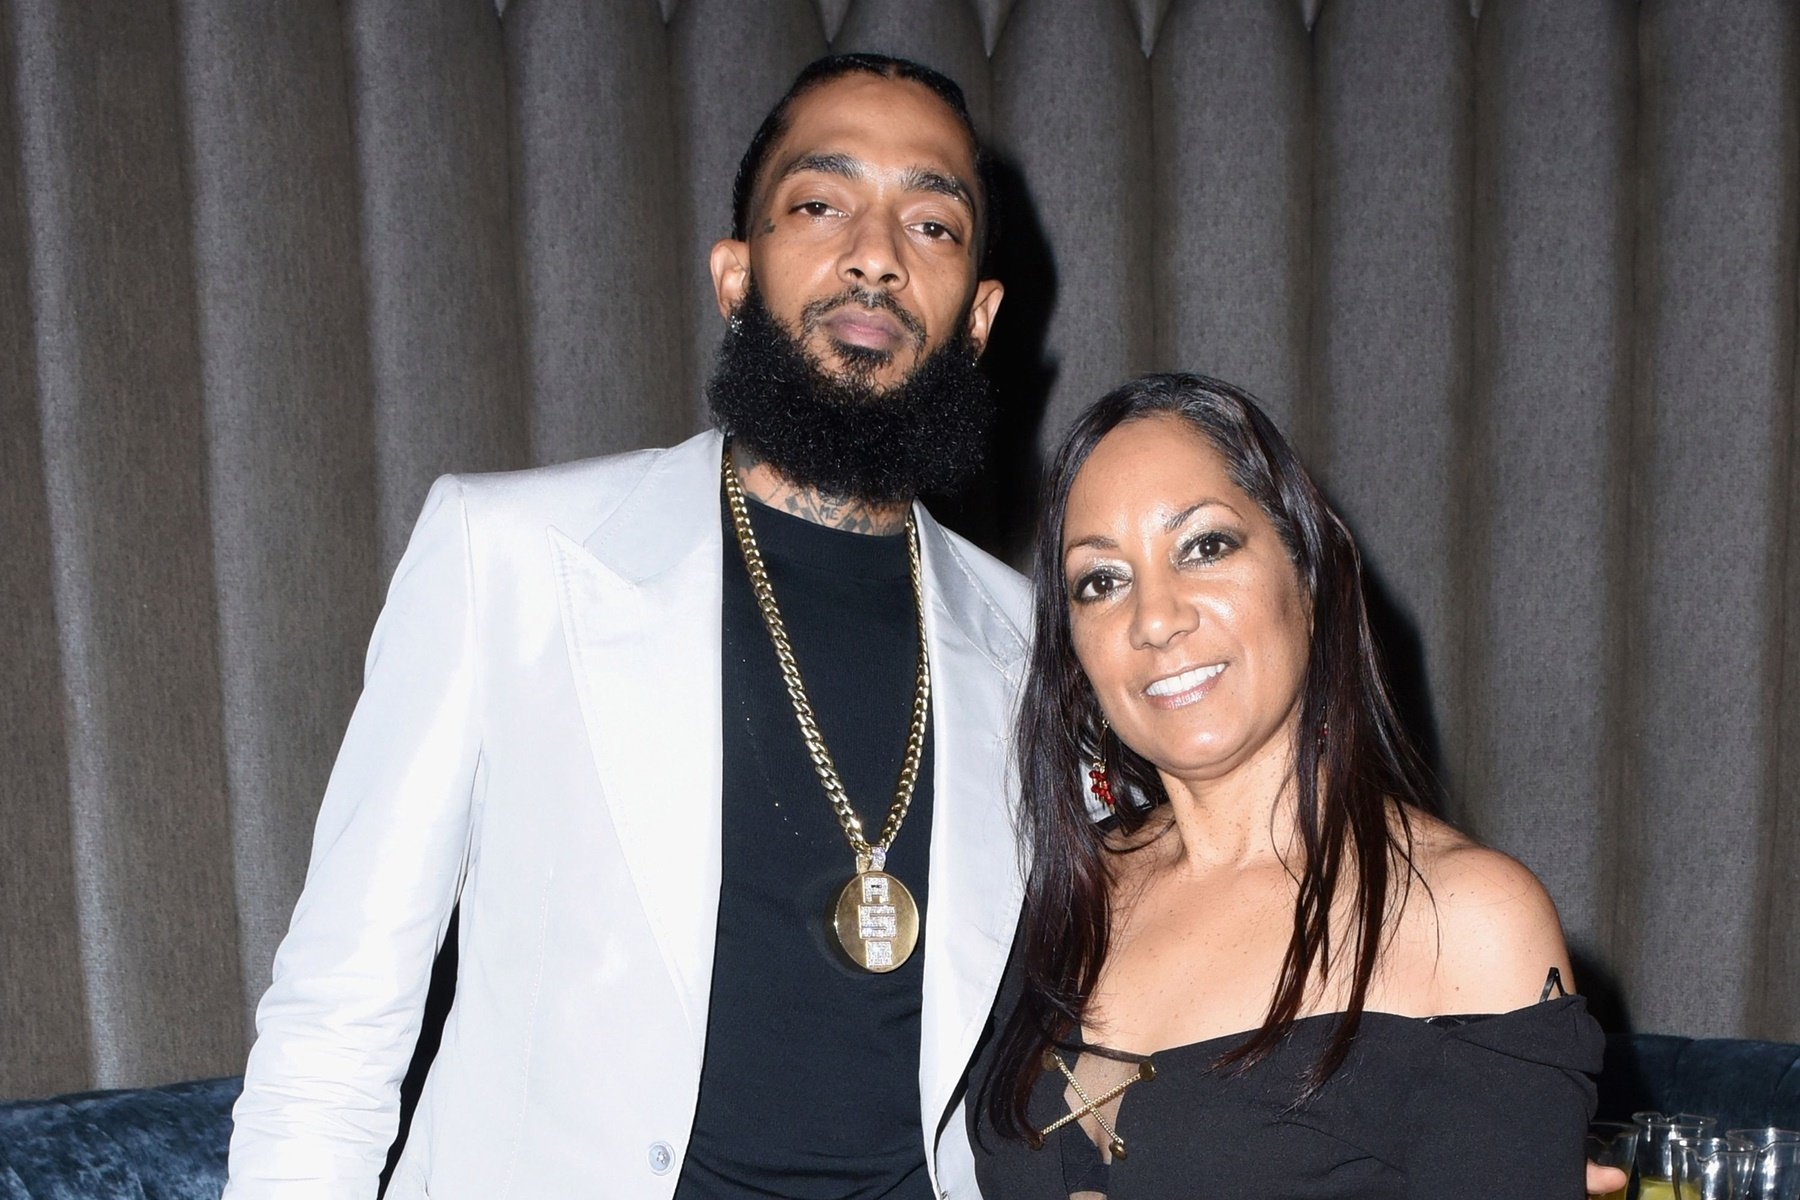 nipsey-hussles-mother-prophetic-message-to-fans-gives-them-life-as-she-reveals-that-he-looks-radiant-and-peaceful-after-death